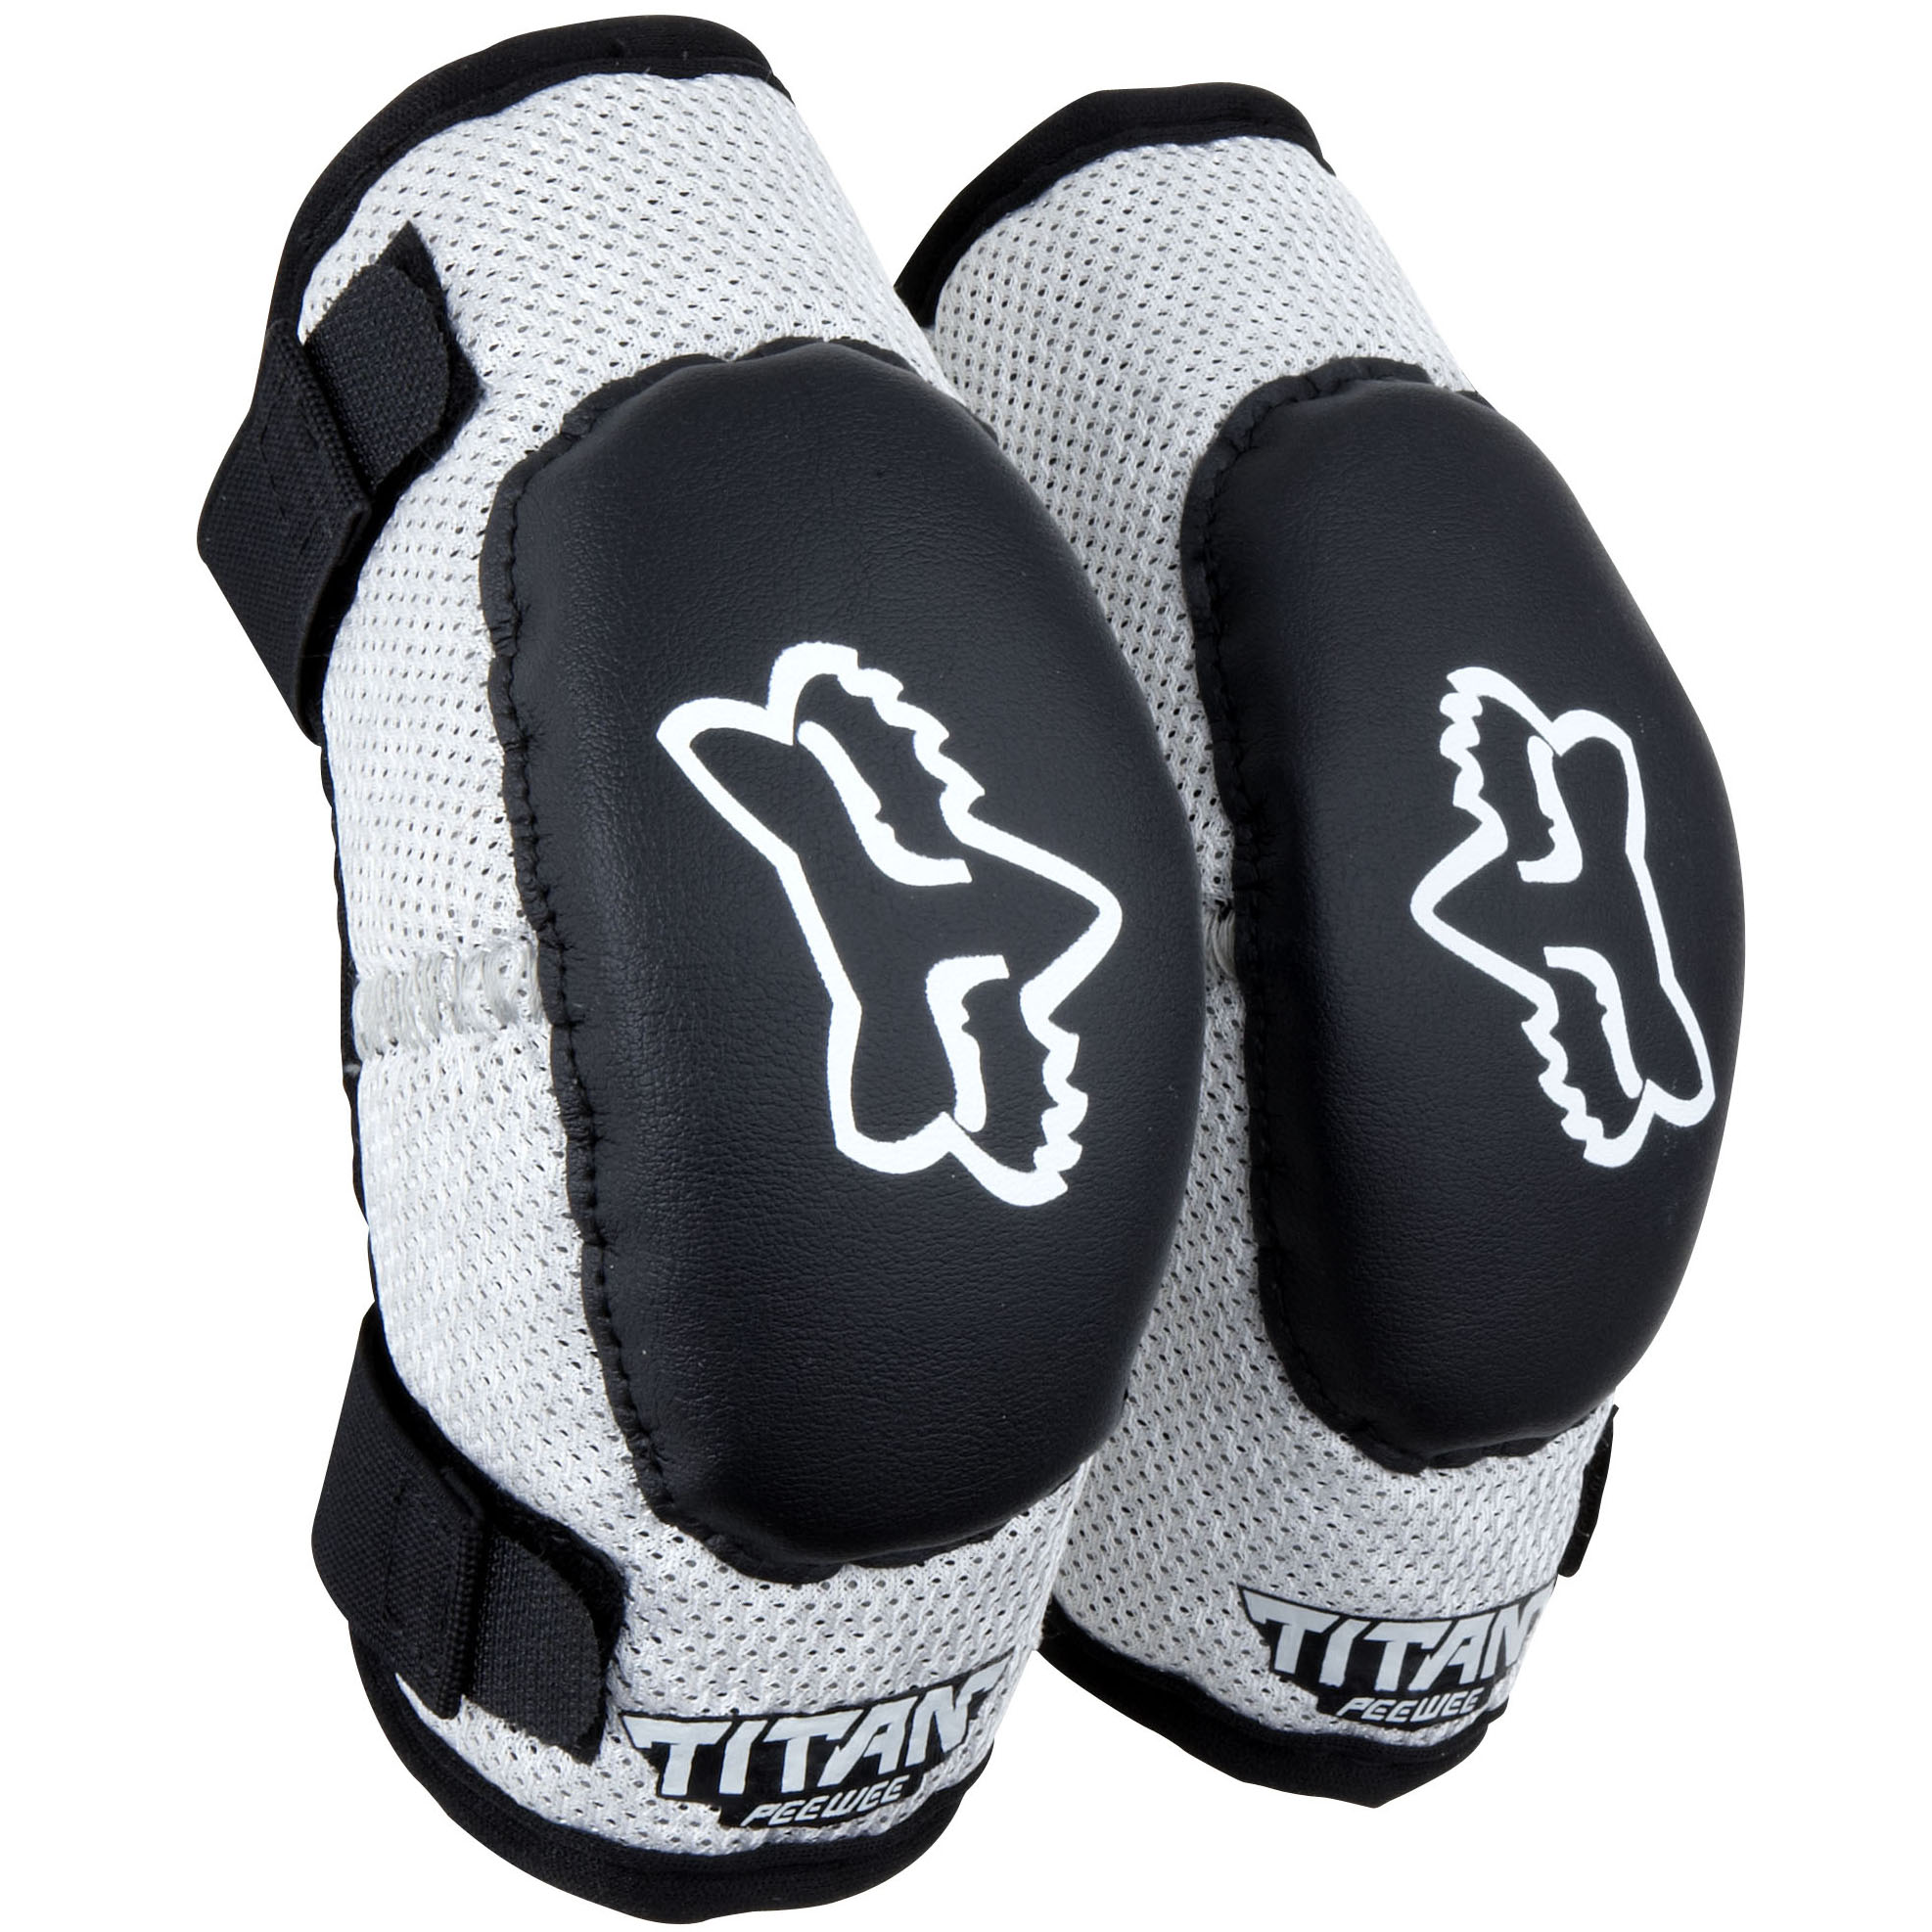 http://www.sixstarracing.com/sites/default/files/Fox-Racing-Pee-Wee-Titan-Elbow-Guards-Black-Silver_0.jpg